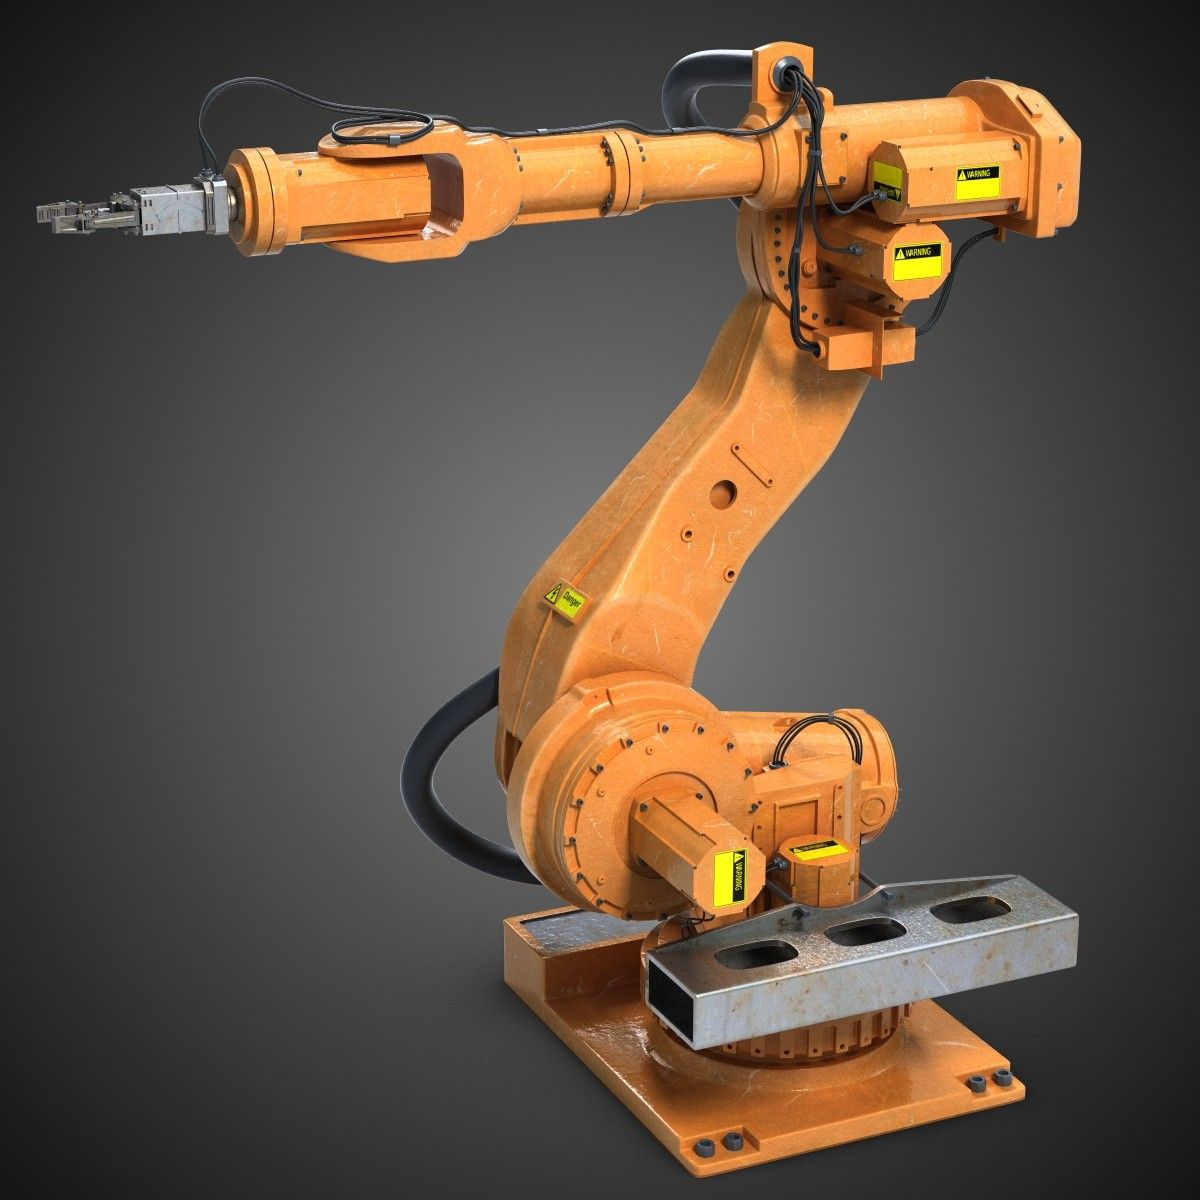 a2ff4cf1cdc79295412544dc3d6b3065 abb robotics industrial robot irb 1200 industrial robots  at bayanpartner.co